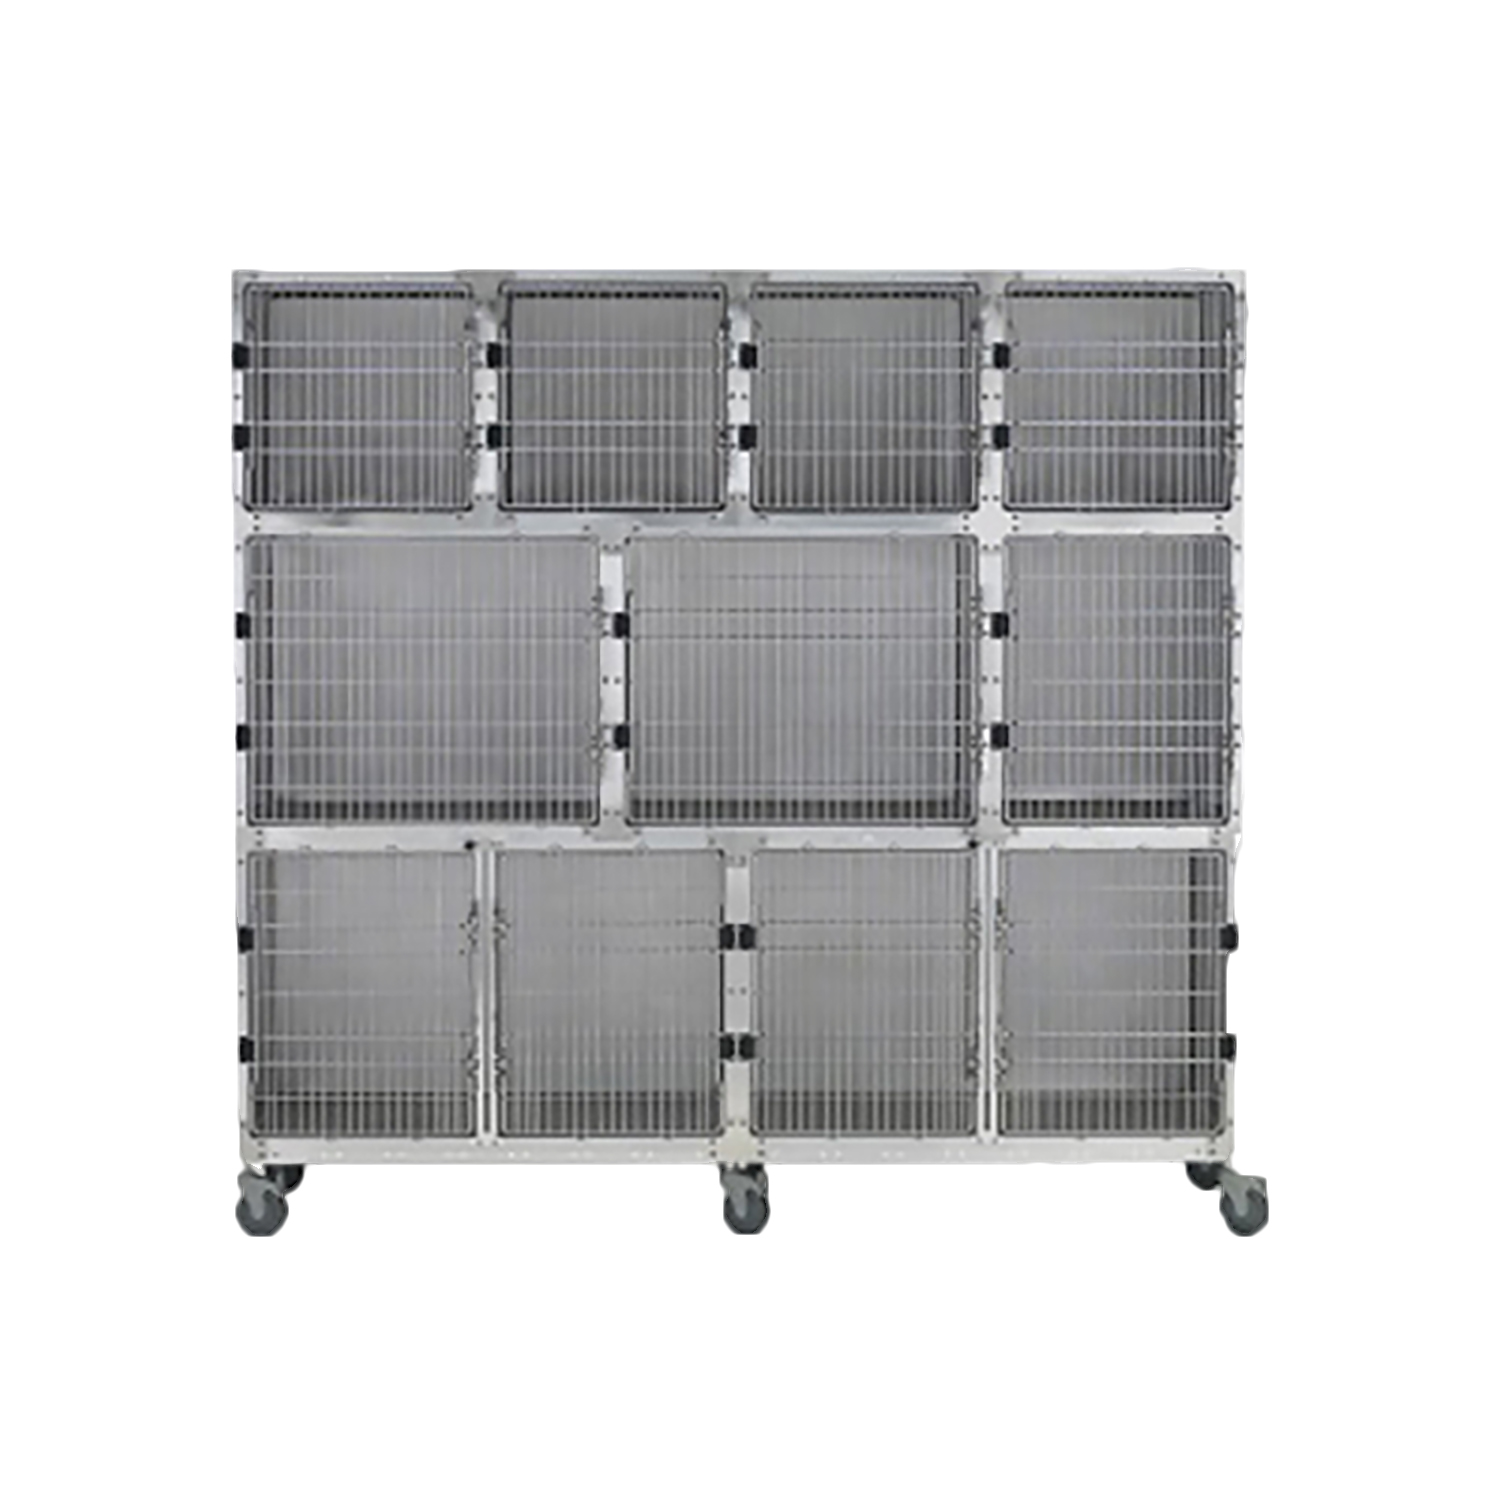 Custom Cage Assembly